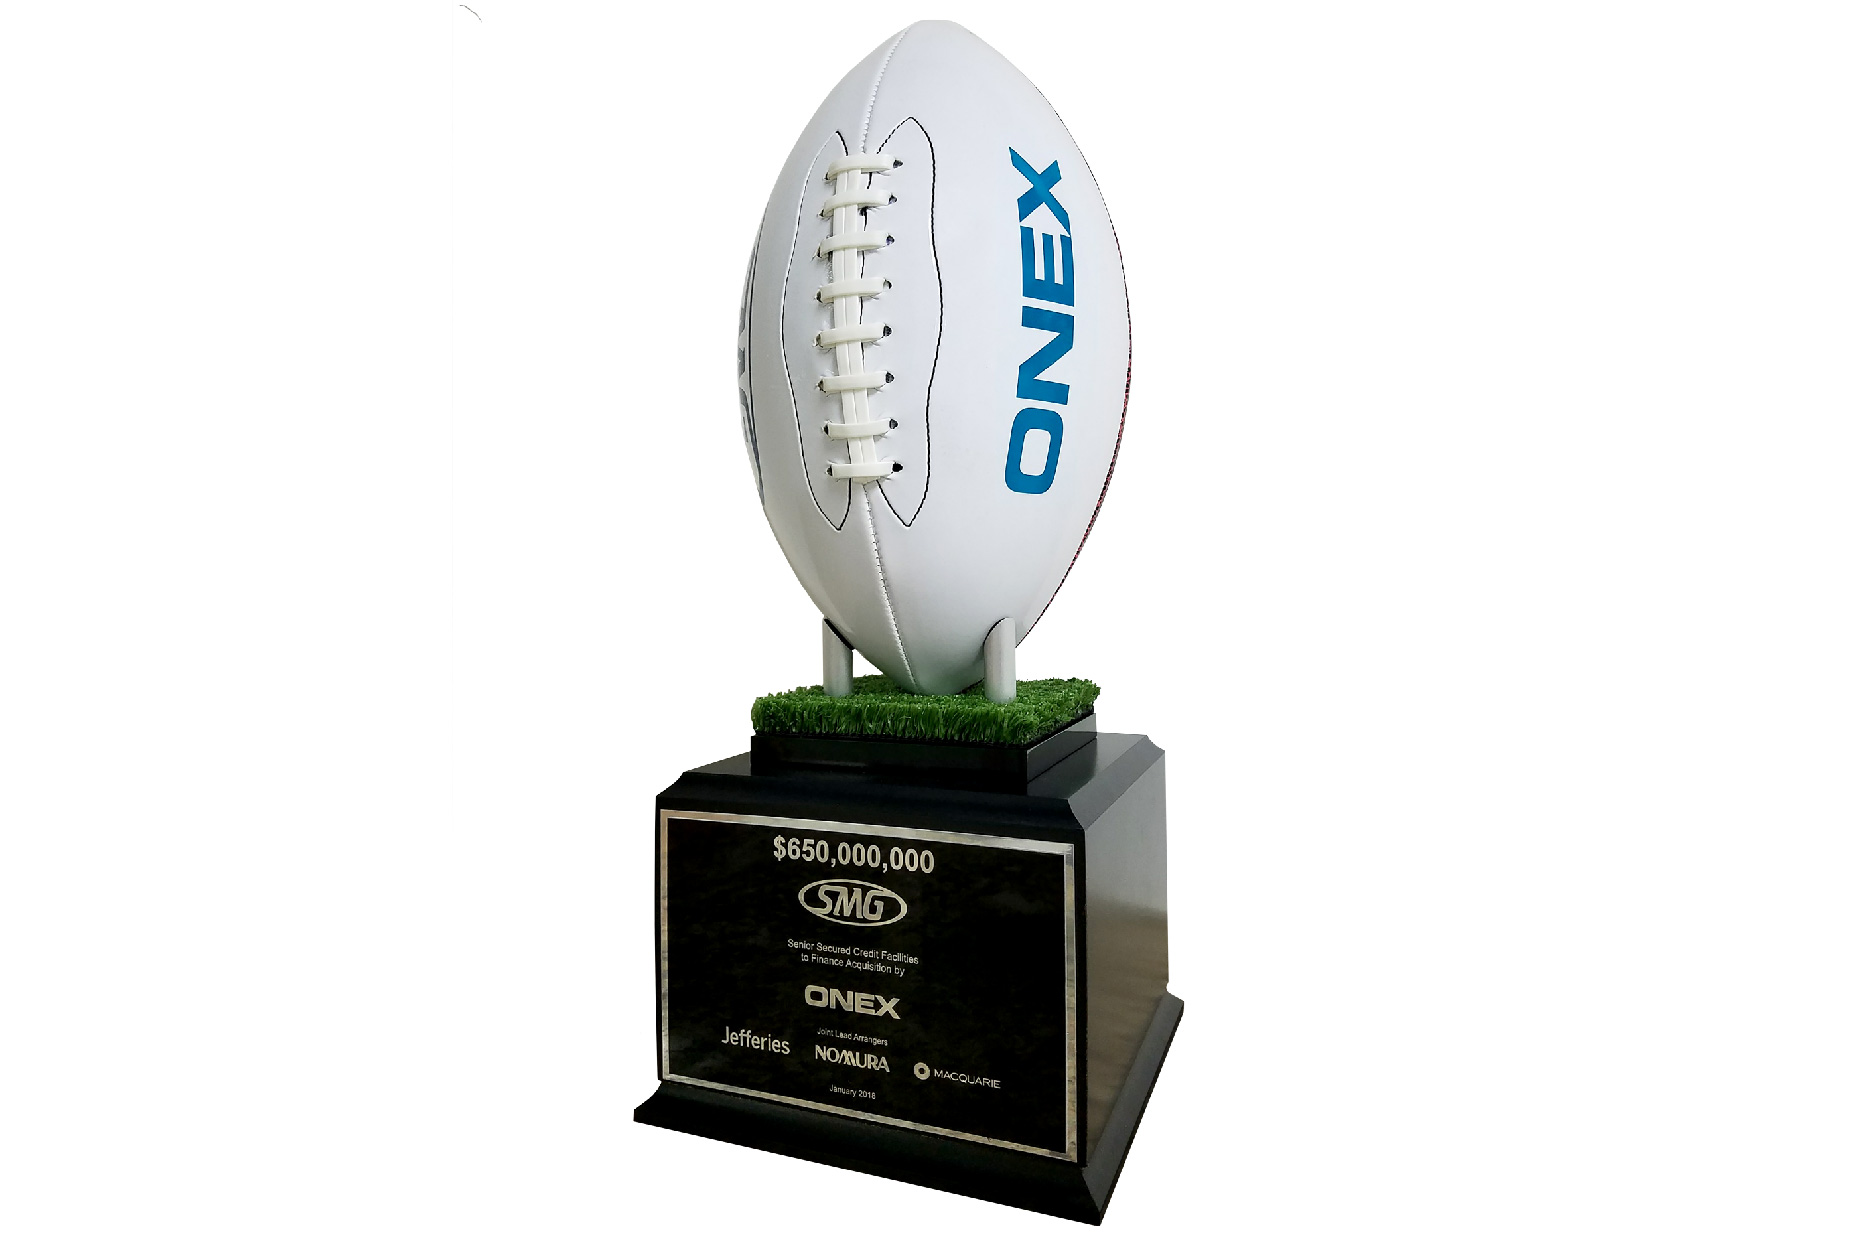 Football personalized with logo and mounted on large base, given for the close of an acquisition deal.